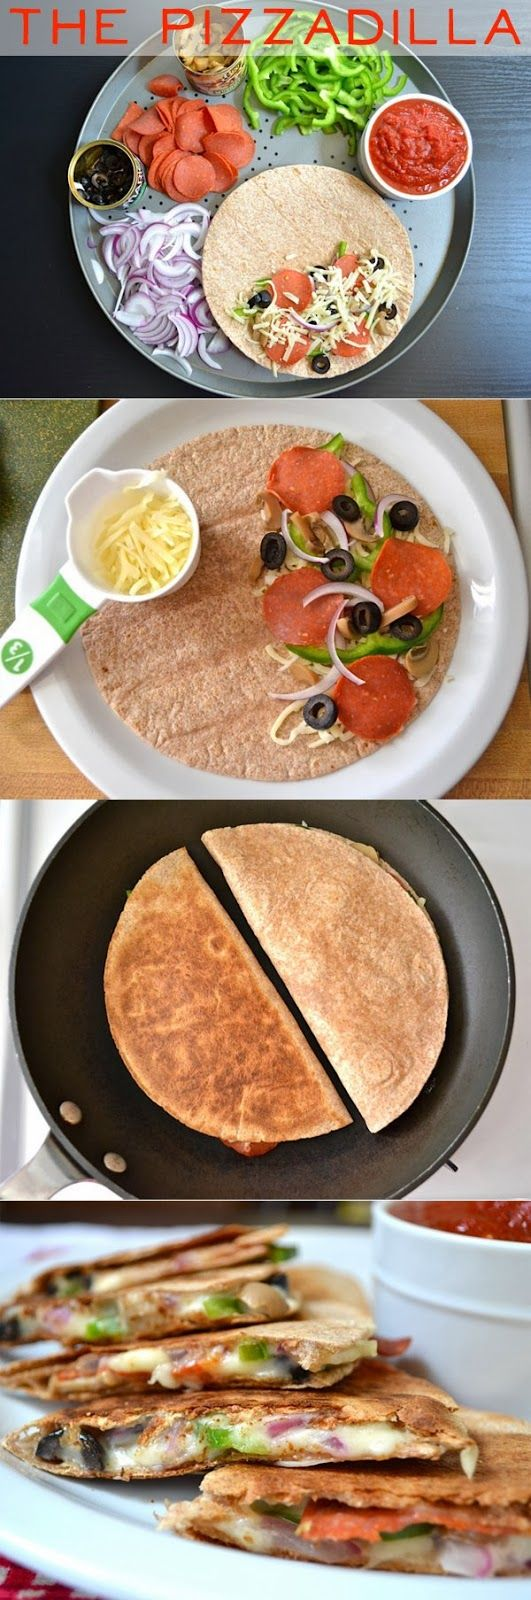 Yummy Recipes: The pizzadilla recipe Swap: Low sodium pepperonis  Wheat low carb wrap low sodium cheese